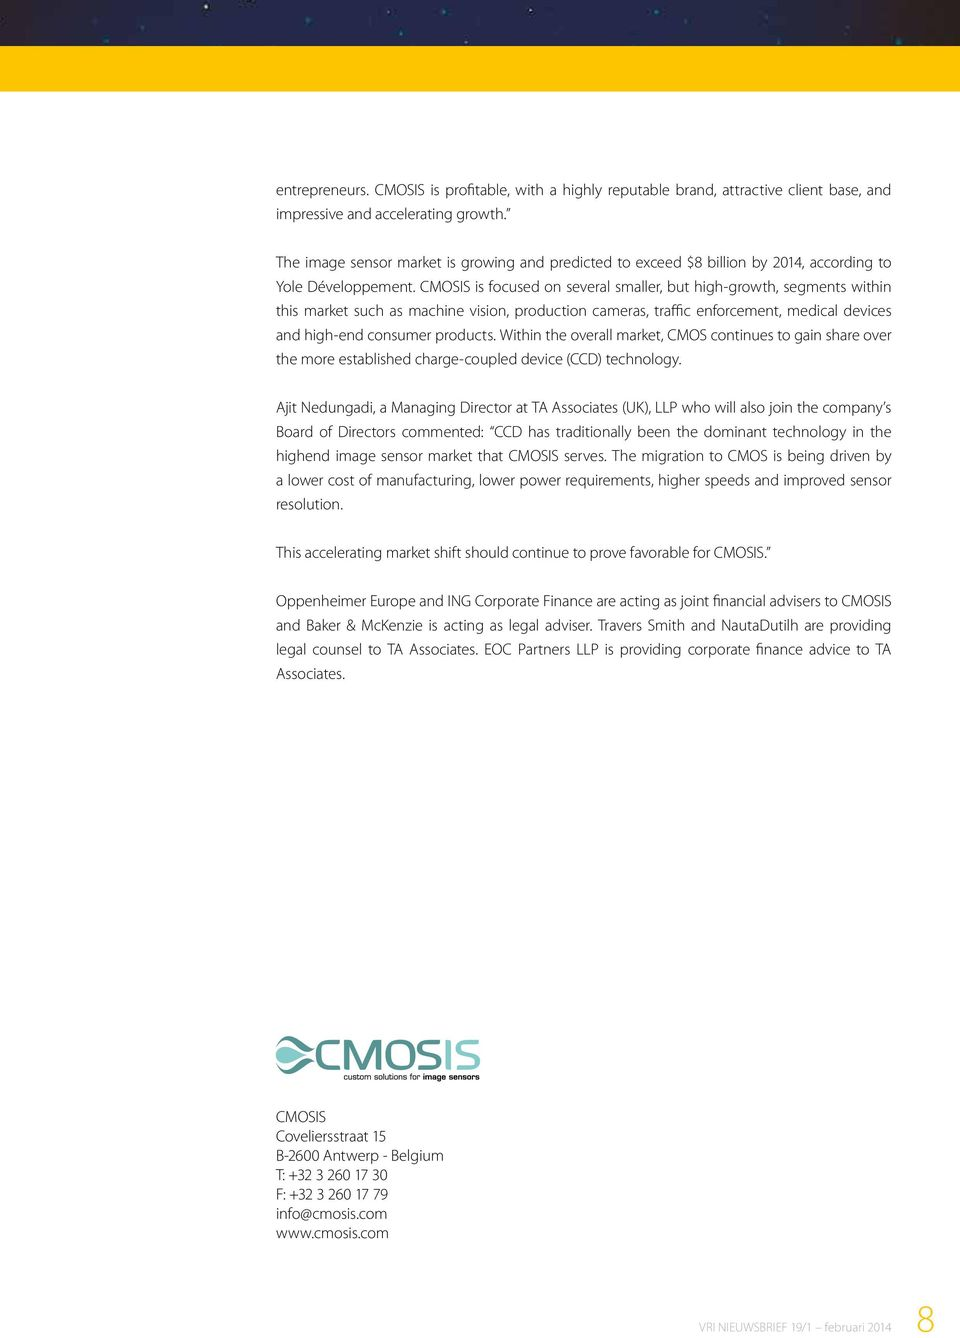 CMOSIS is focused on several smaller, but high-growth, segments within this market such as machine vision, production cameras, traffic enforcement, medical devices and high-end consumer products.